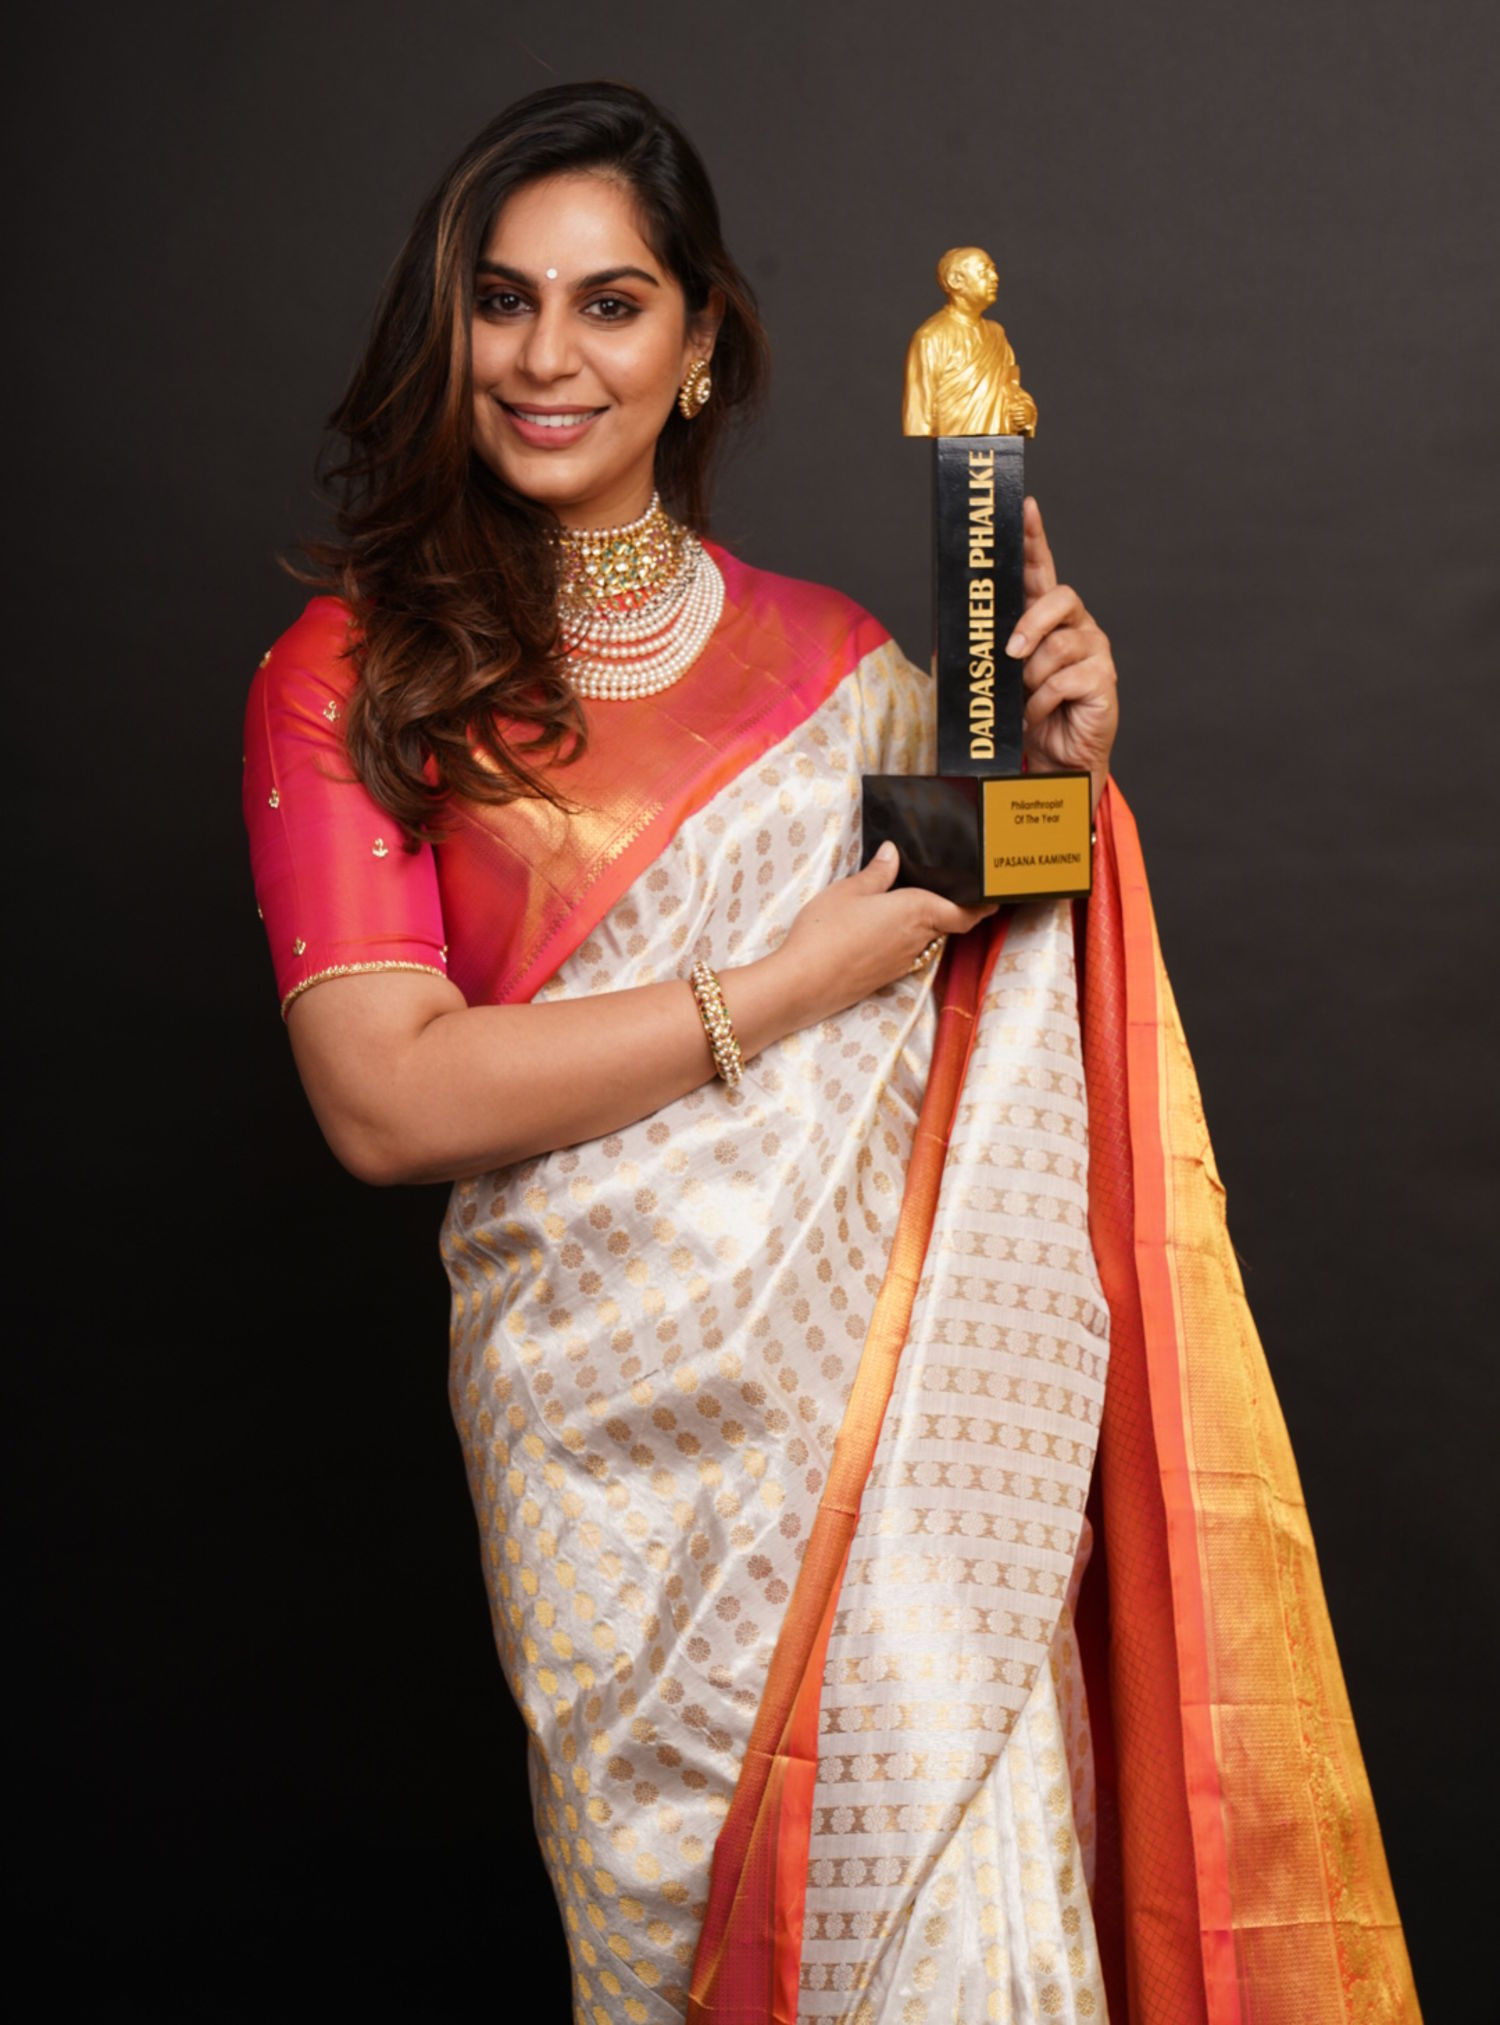 Upasana Kamineni, Vice Chairman, Apollo Foundation honored as 'Philanthropist of the Year' at Dadasaheb Phalke Excellence Awards 2019